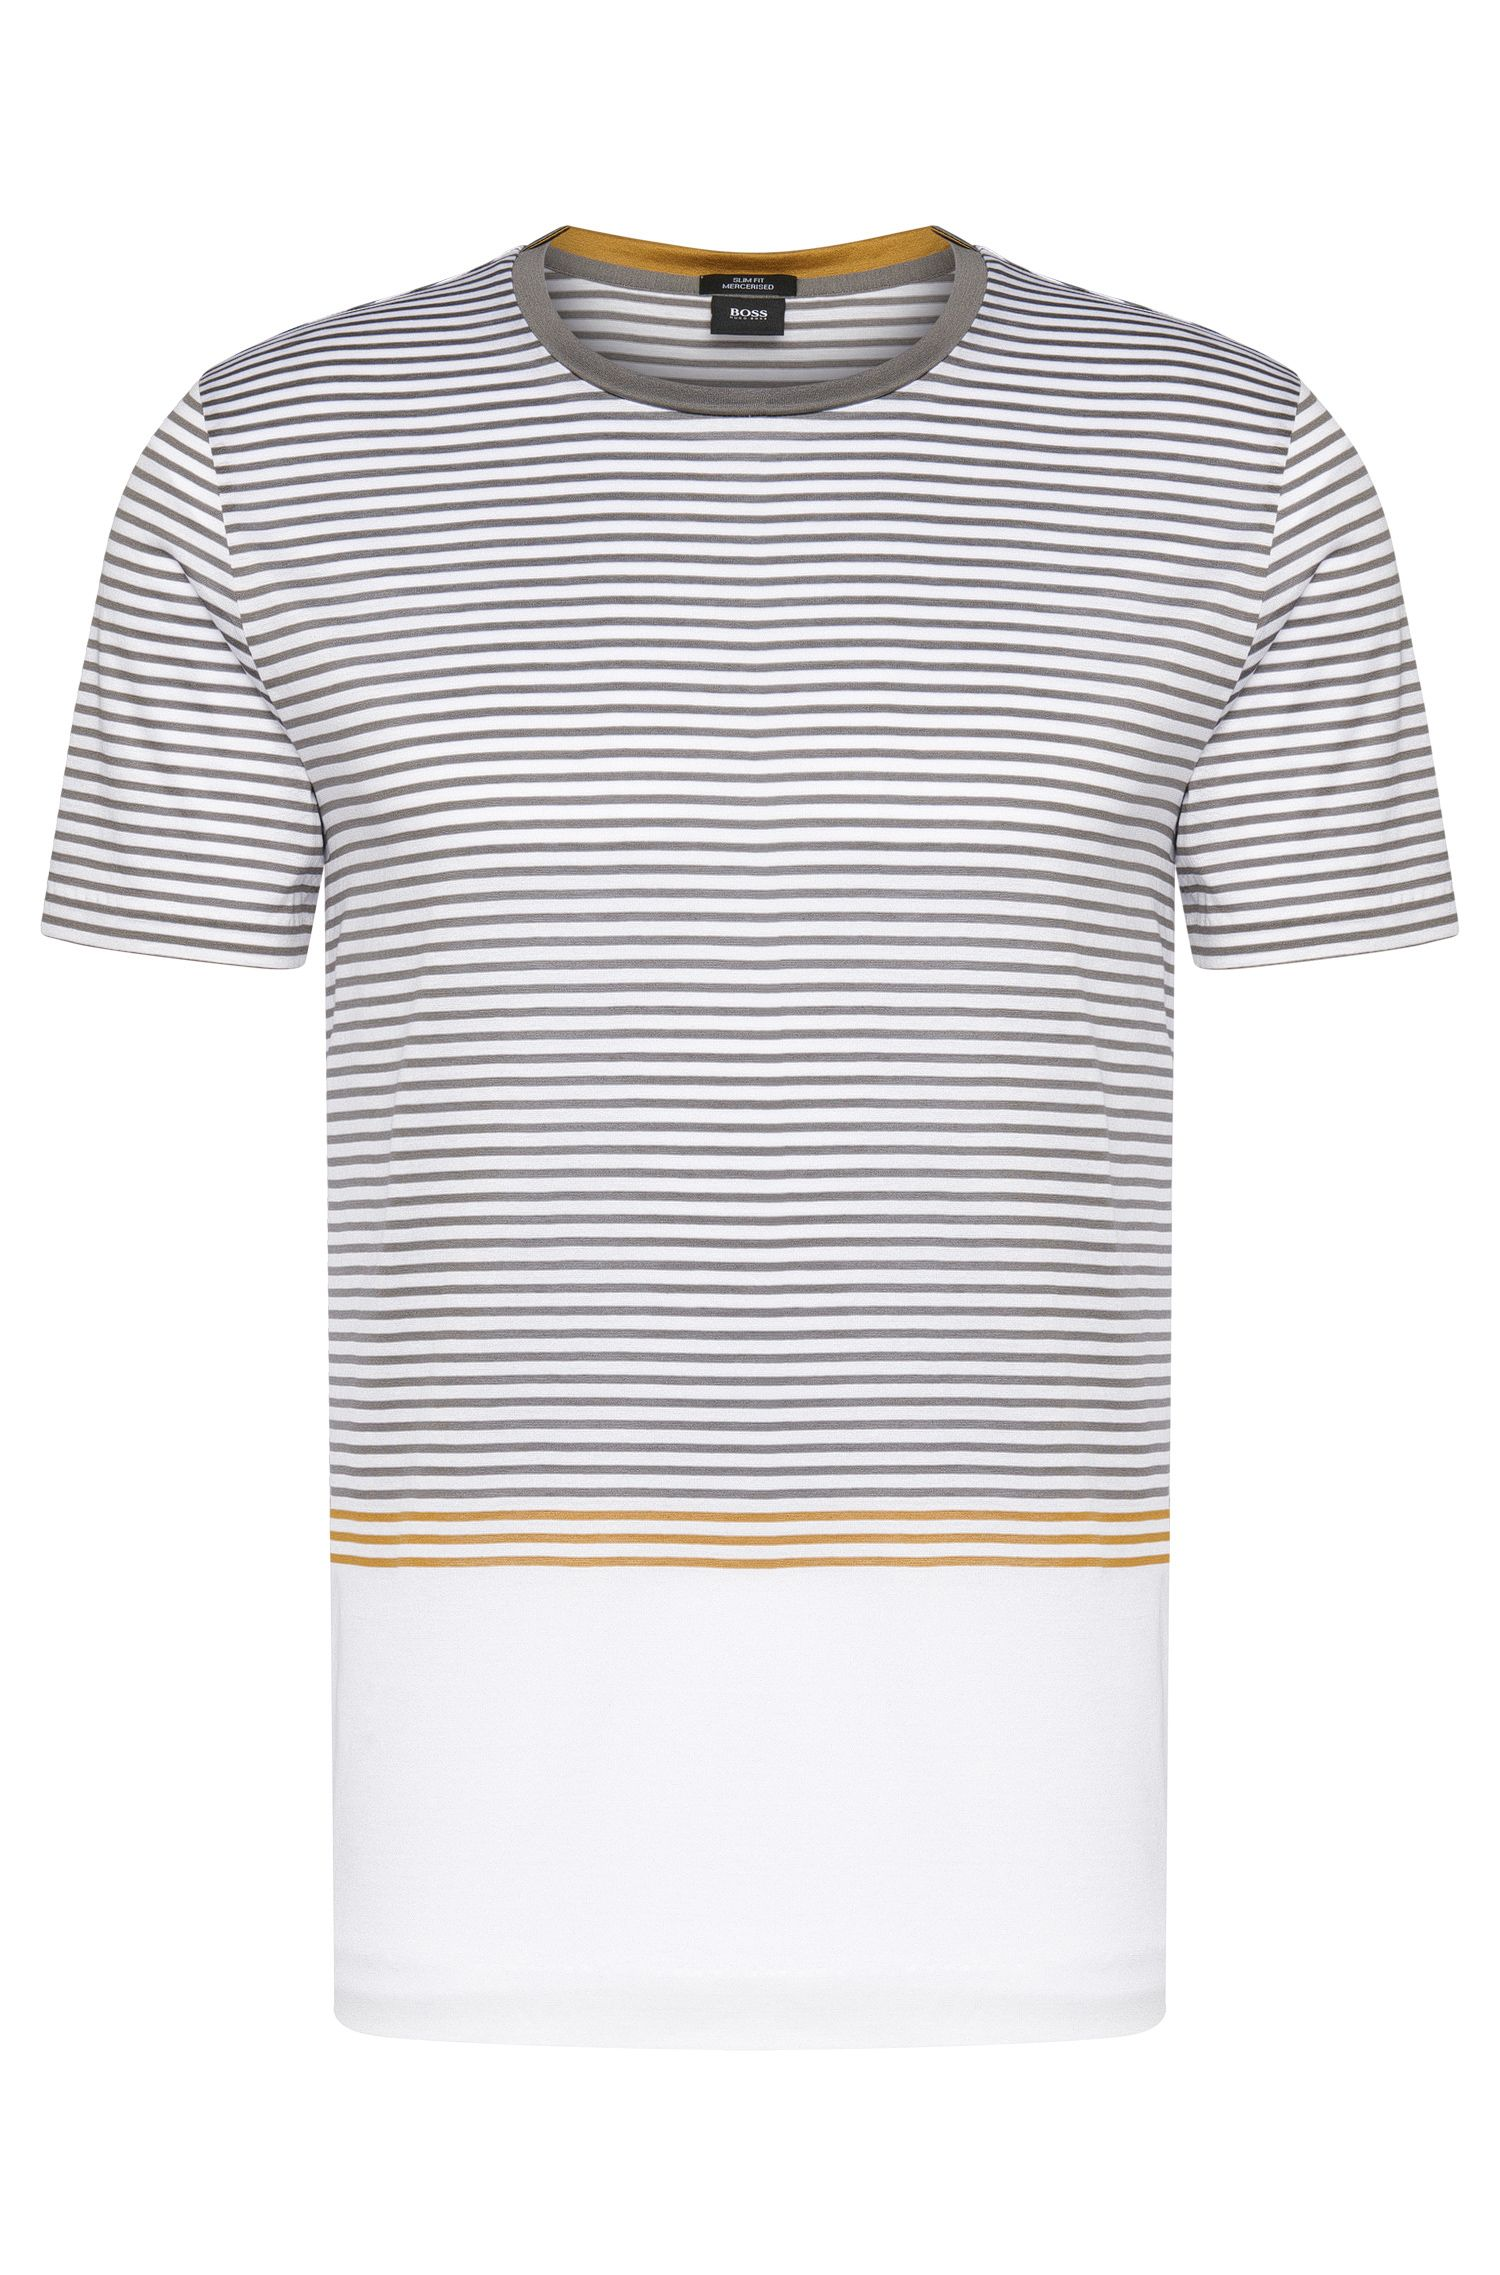 Mercerized Cotton Striped T-Shirt | Tessler